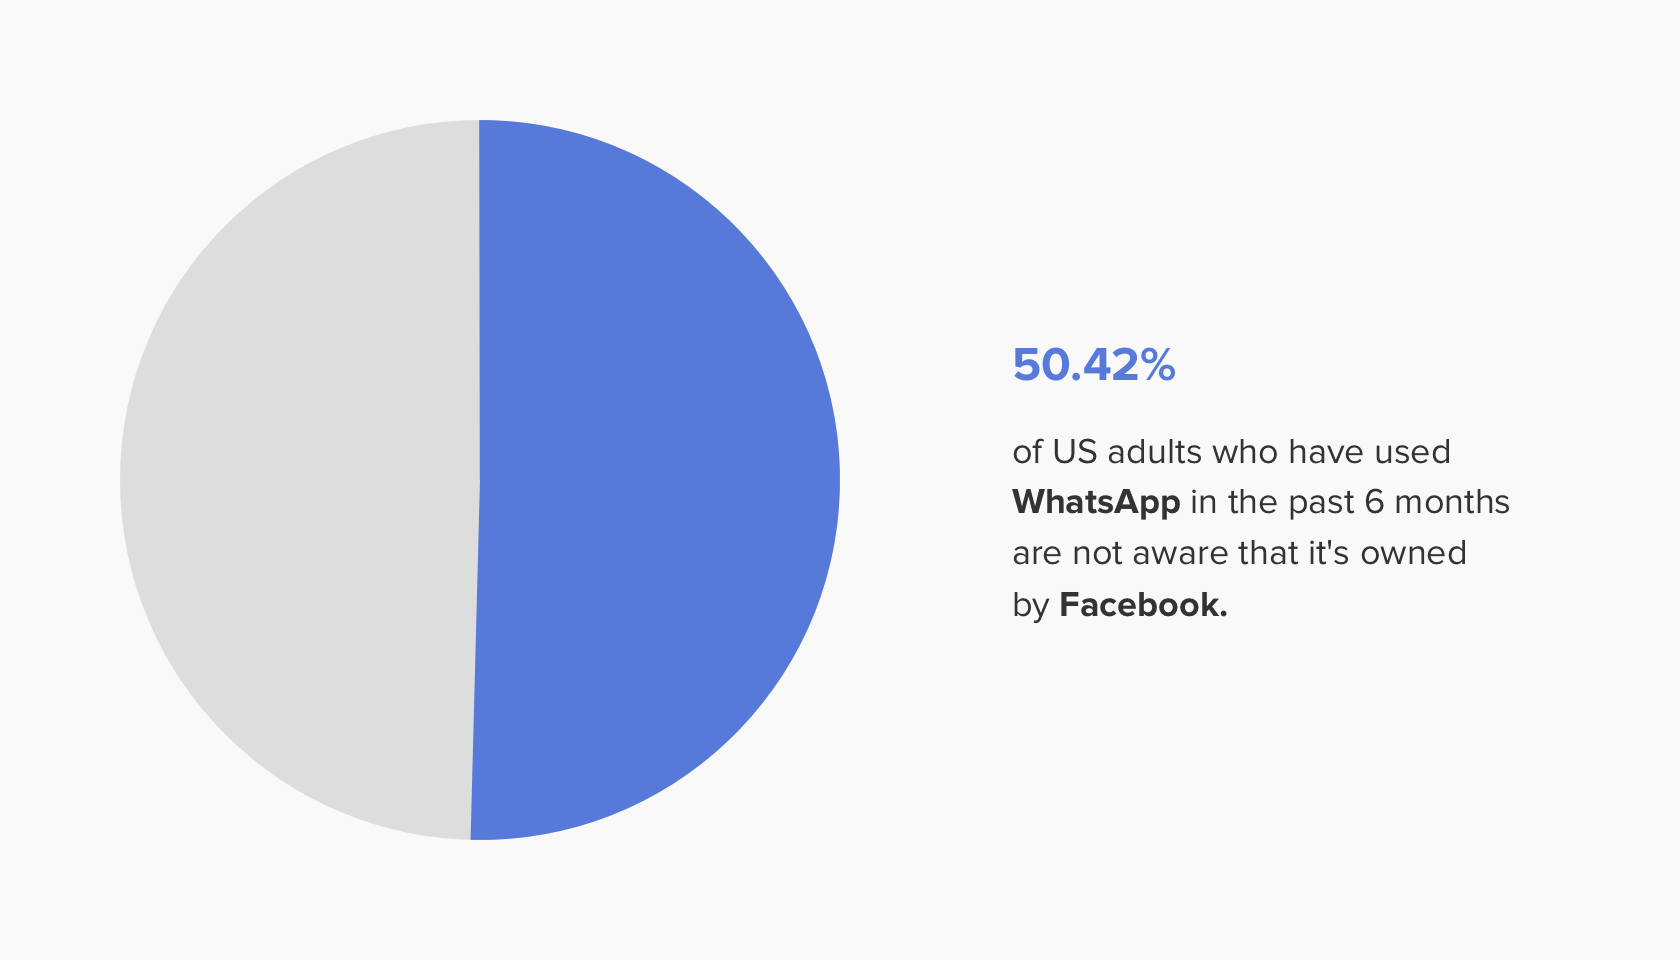 pie-chart-showing-percentage-of-people-unaware-that-Facebooks-owns-WhatsApp